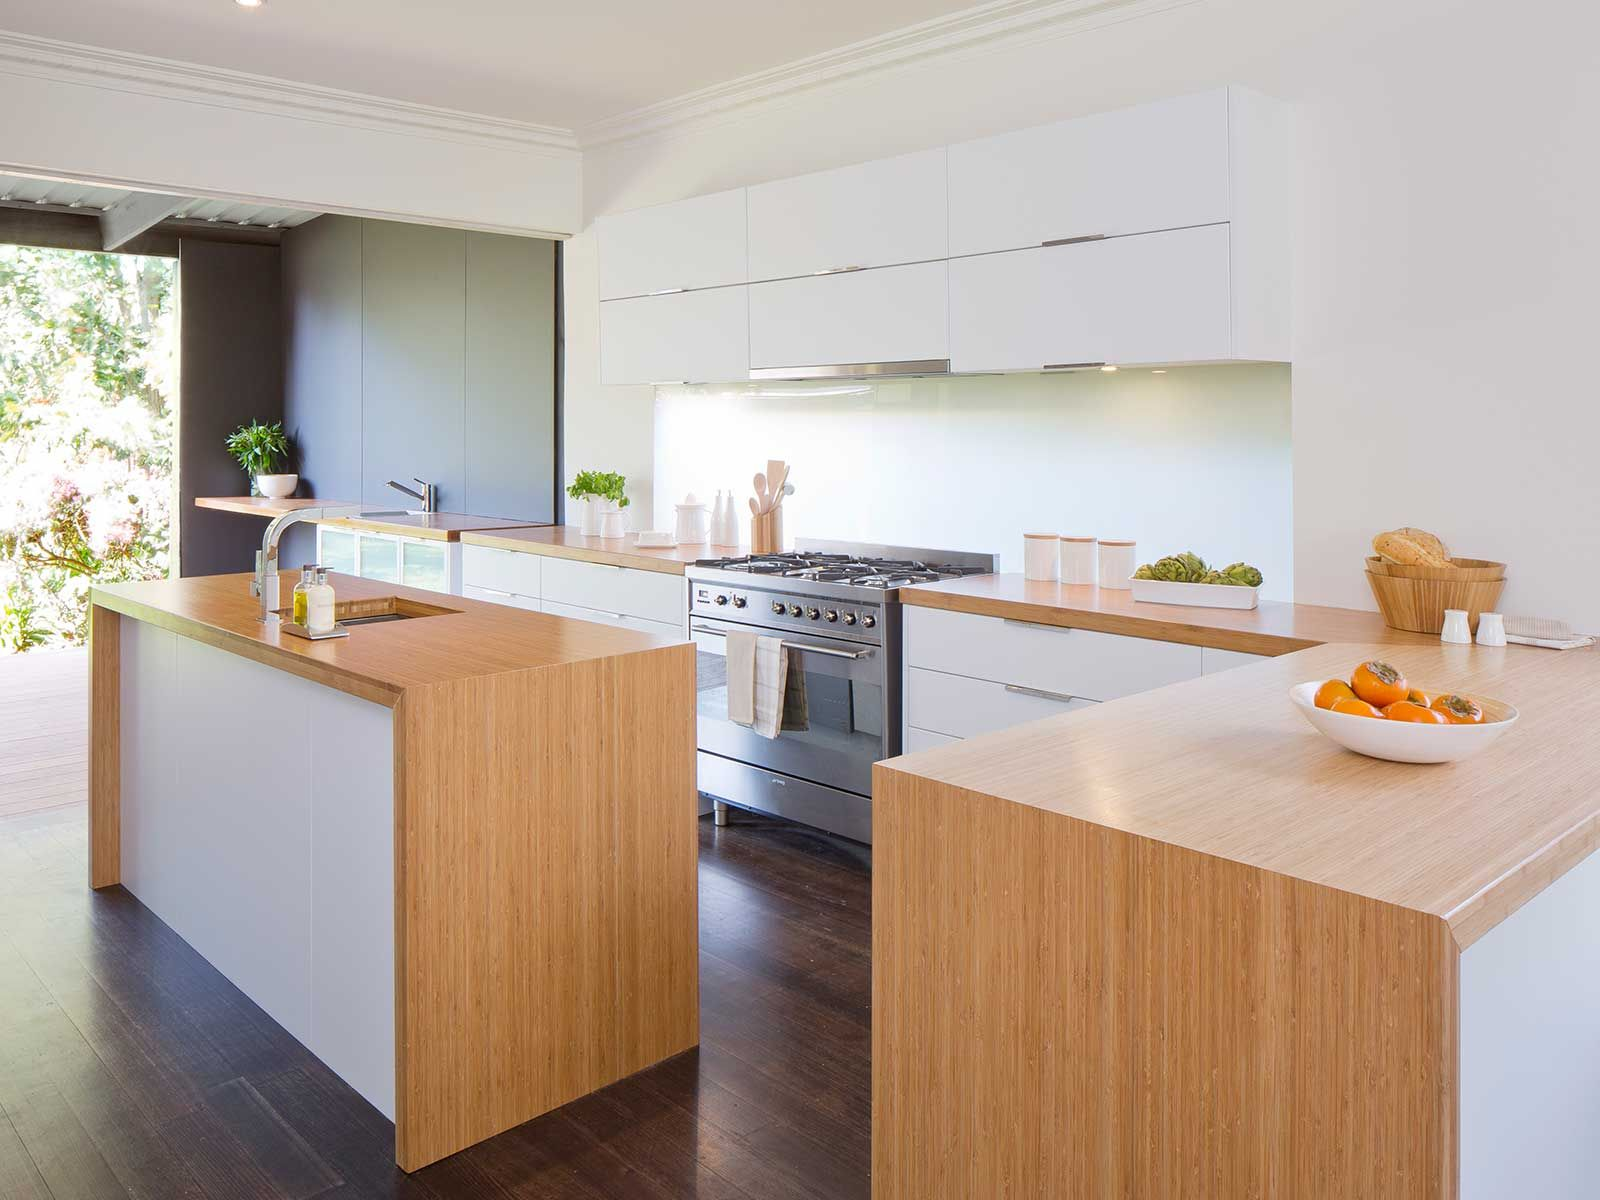 Bunnings Kitchens Flat Packs Picture Bunnings Kaboodle Bamboo Kitchen Google Search